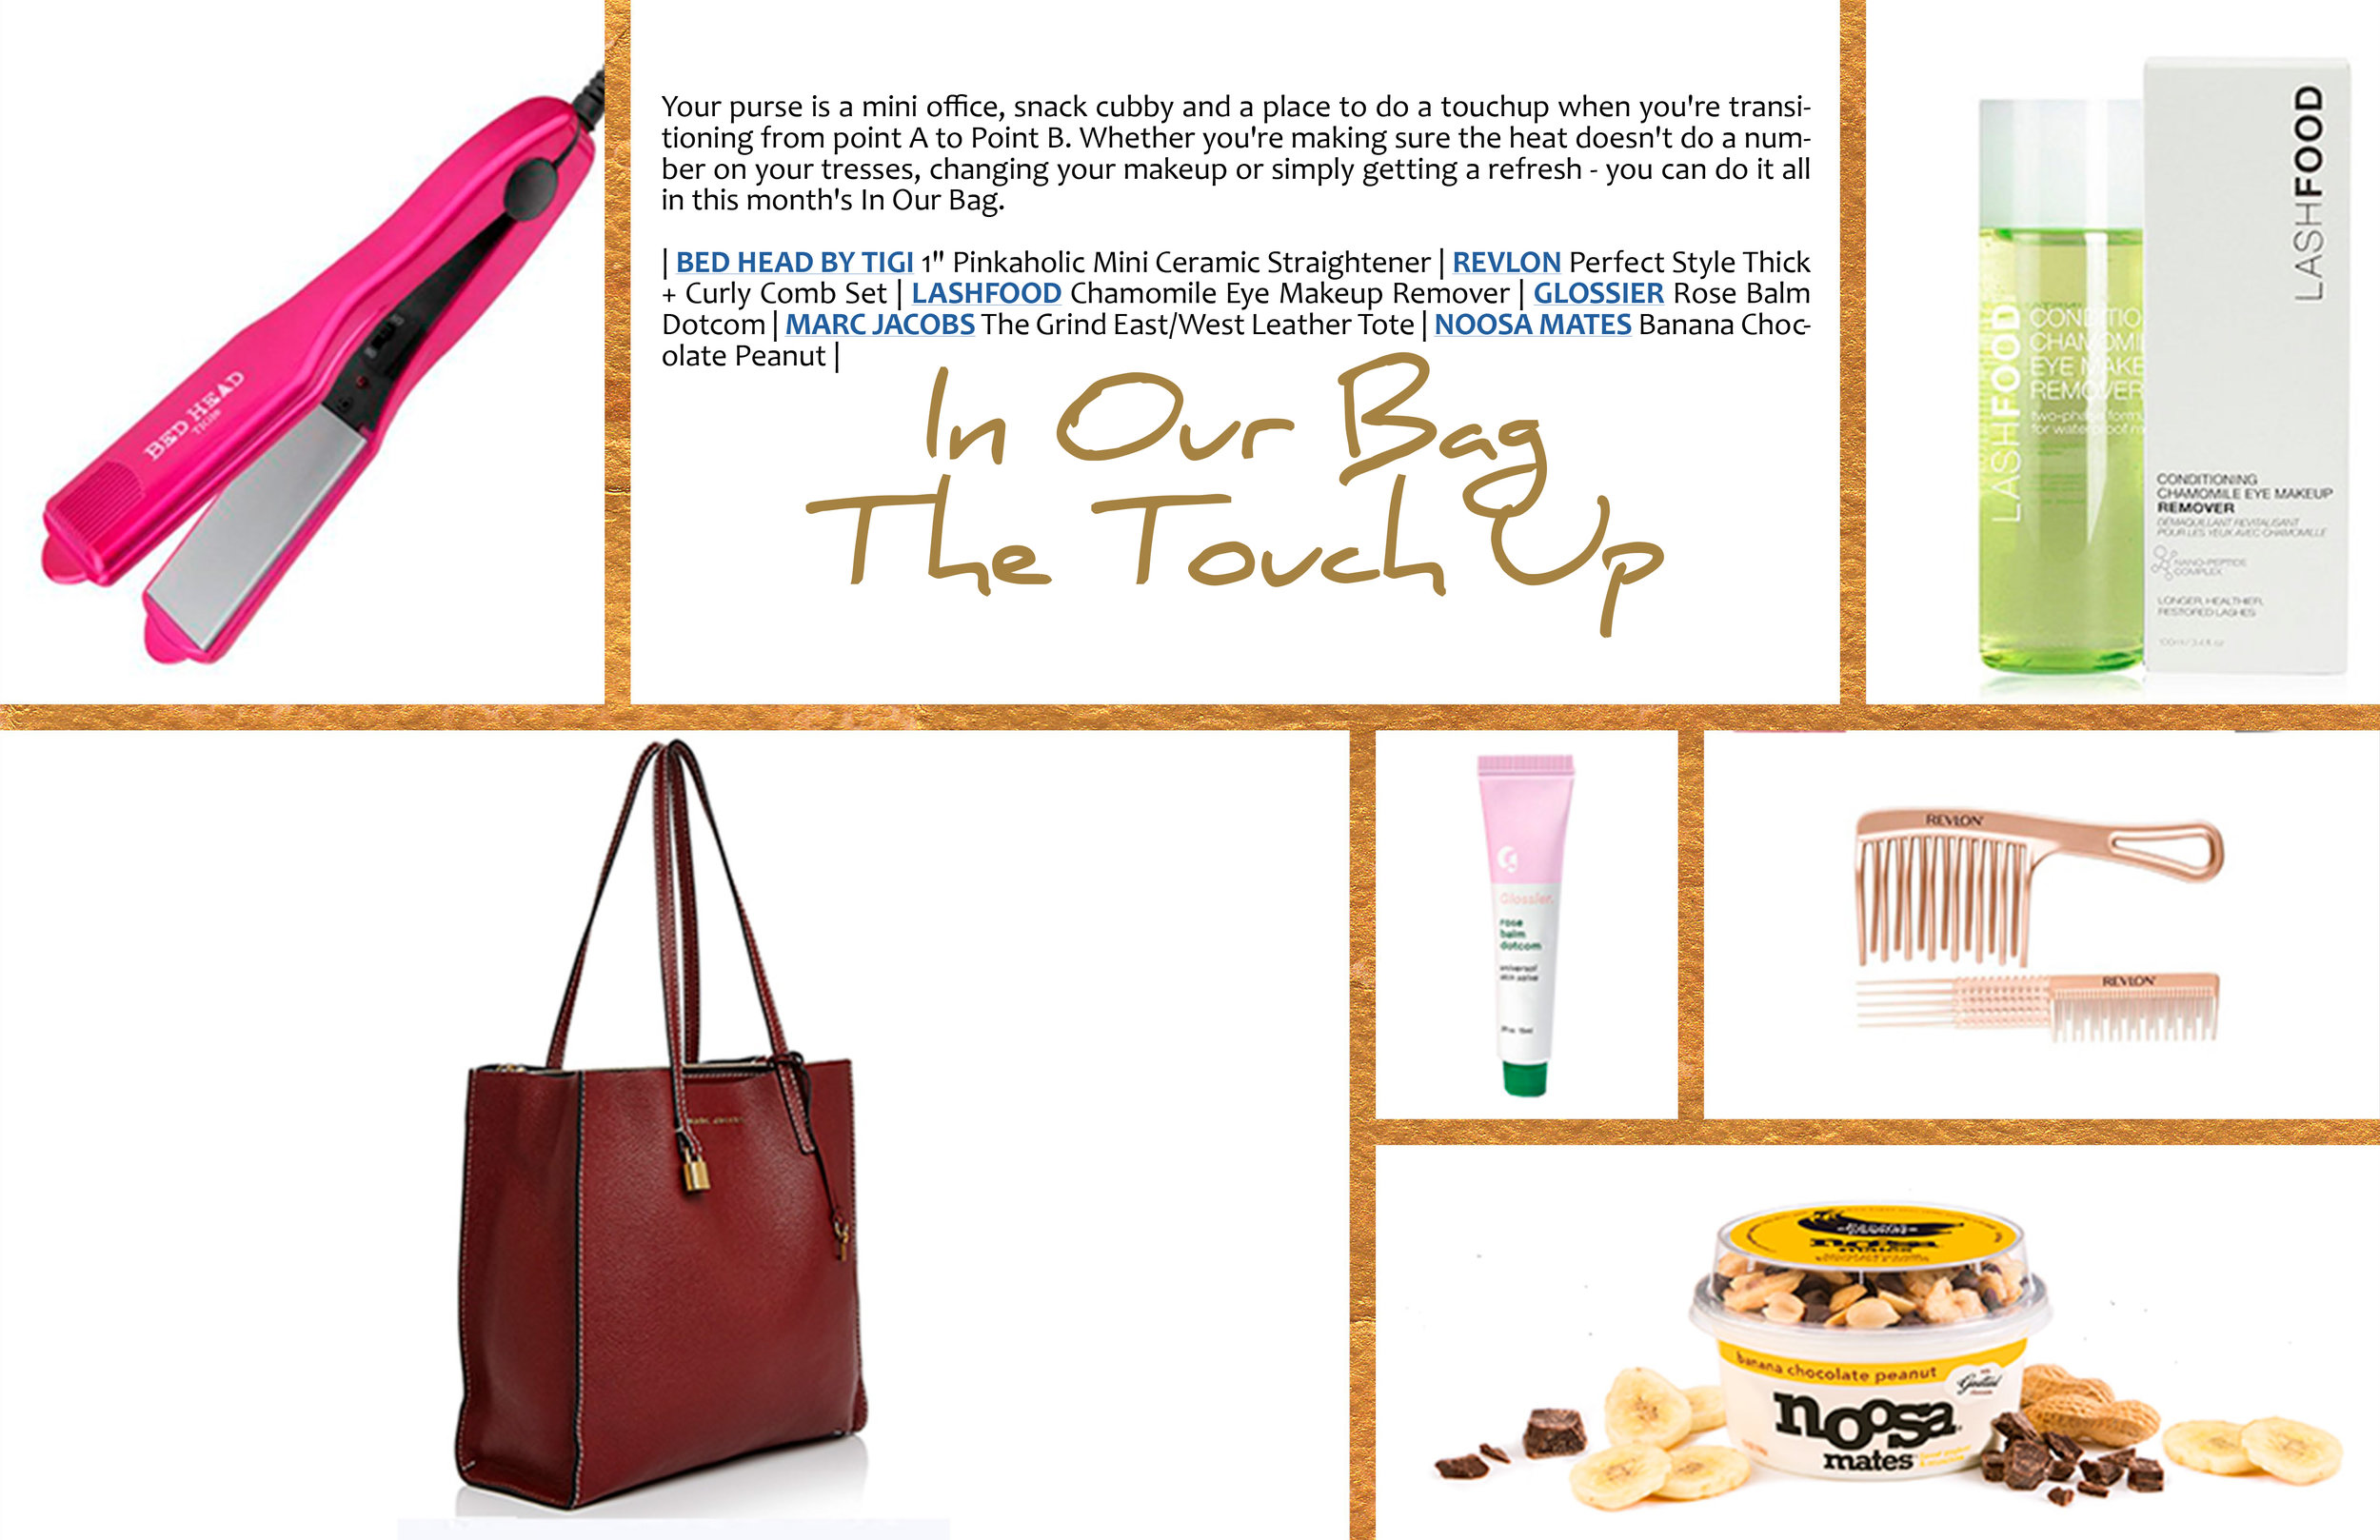 AM AUG IN OUR BAG THE TOUCH UP.jpg